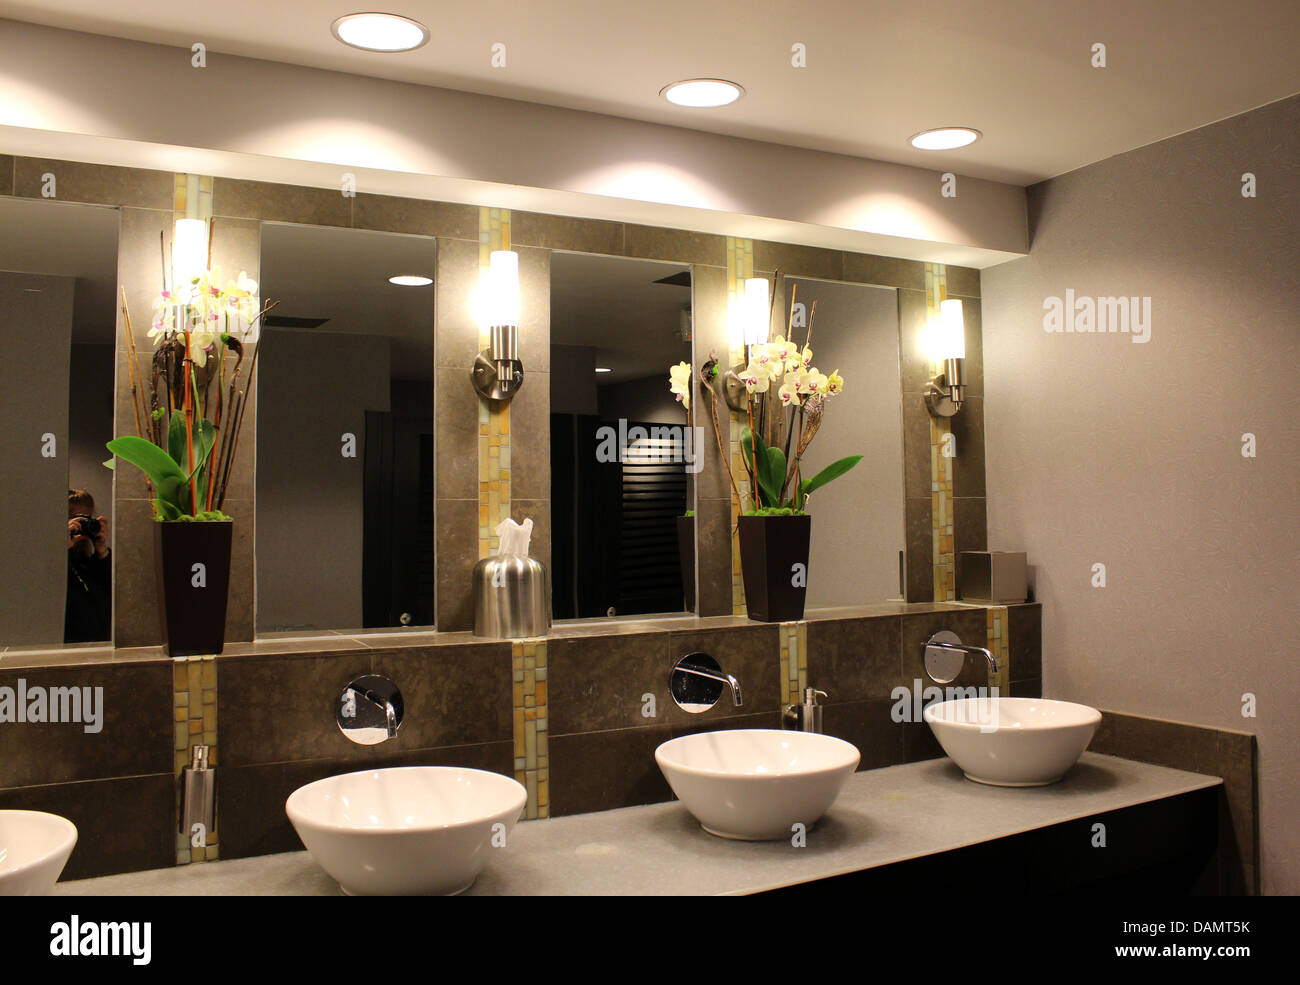 Ultra Chic Bathroom With Fancy Sinks,mirrors And Flower Arrangements,subtle  Lighting Overhead In Upscale City Hotel.